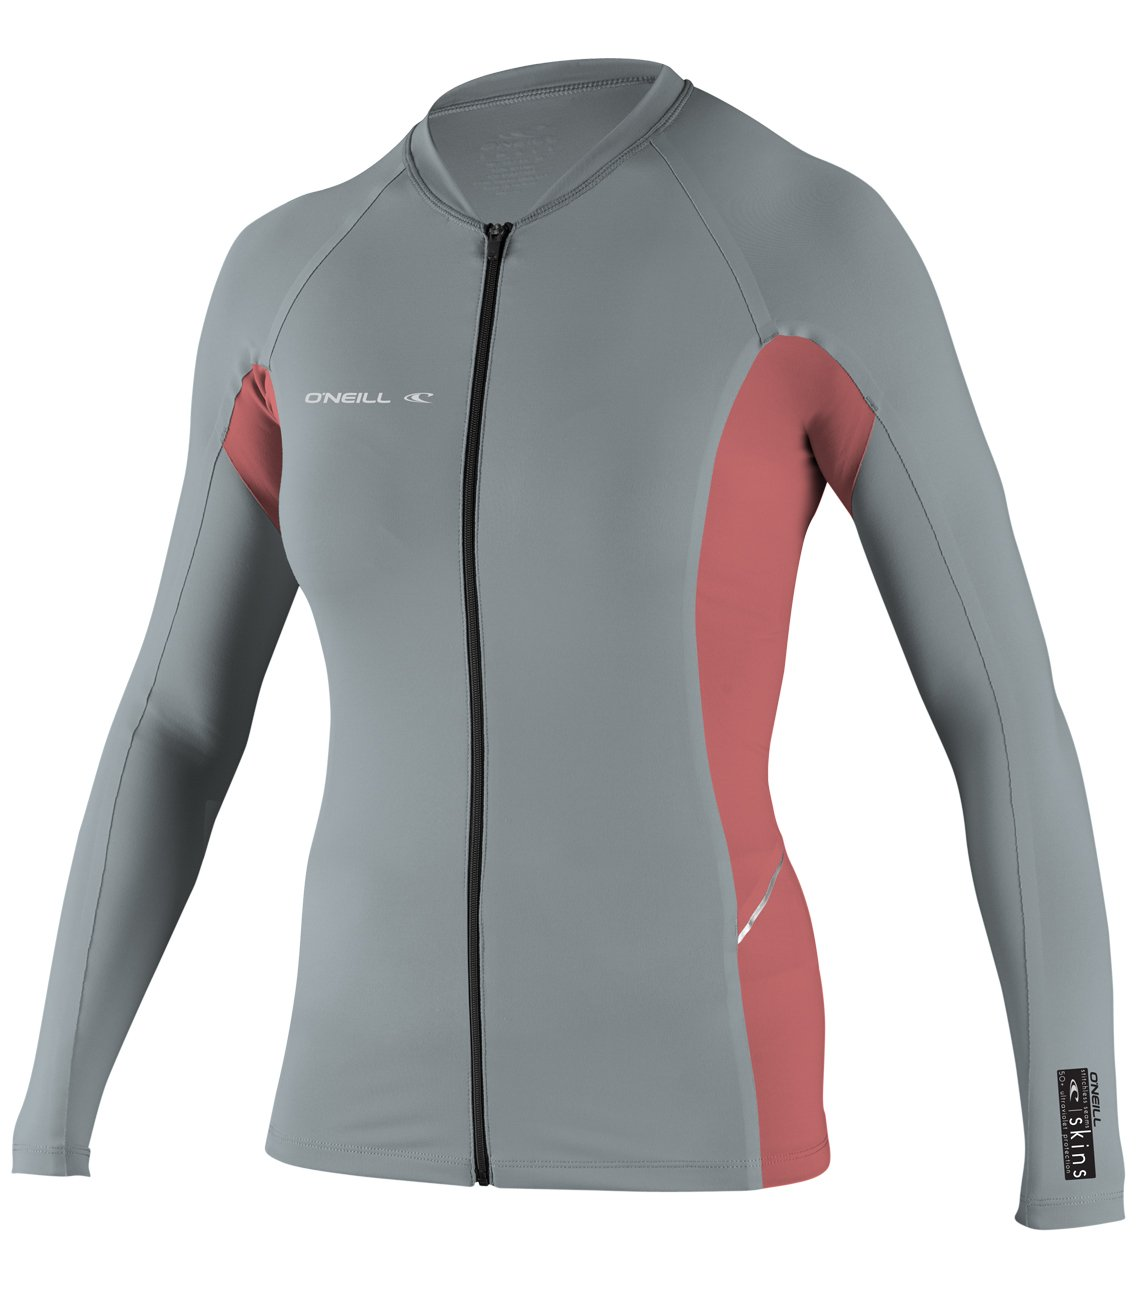 O'Neill Women's Premium Skins Stitchless UPF 50+ Long Sleeve Full Zip Jacket, Cool Grey/Coral, Large